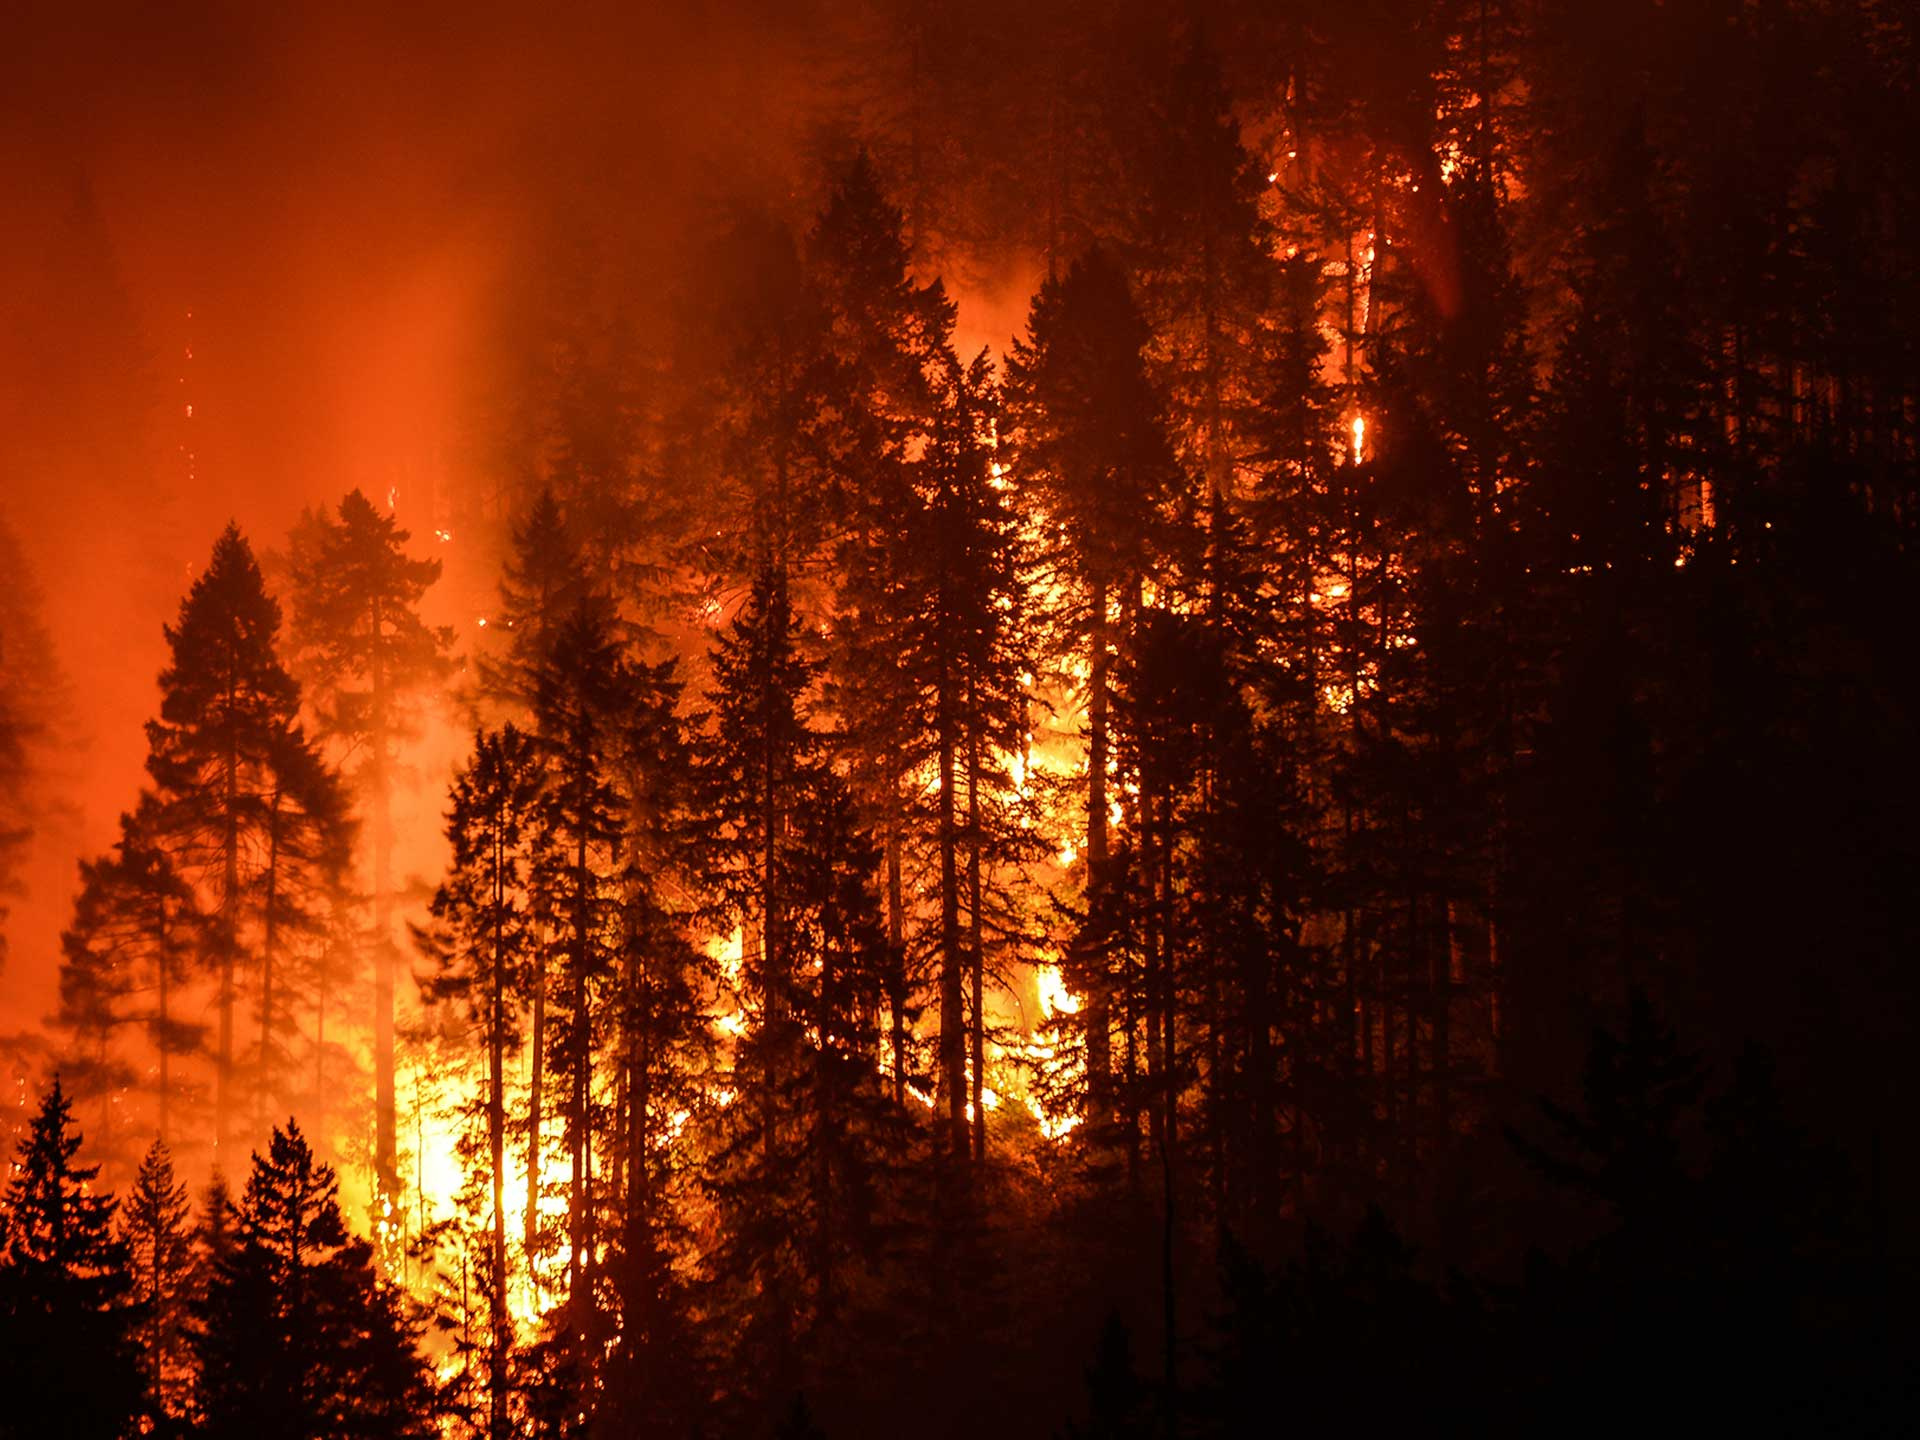 California's delayed rainy season is prolonging the fire season by a month